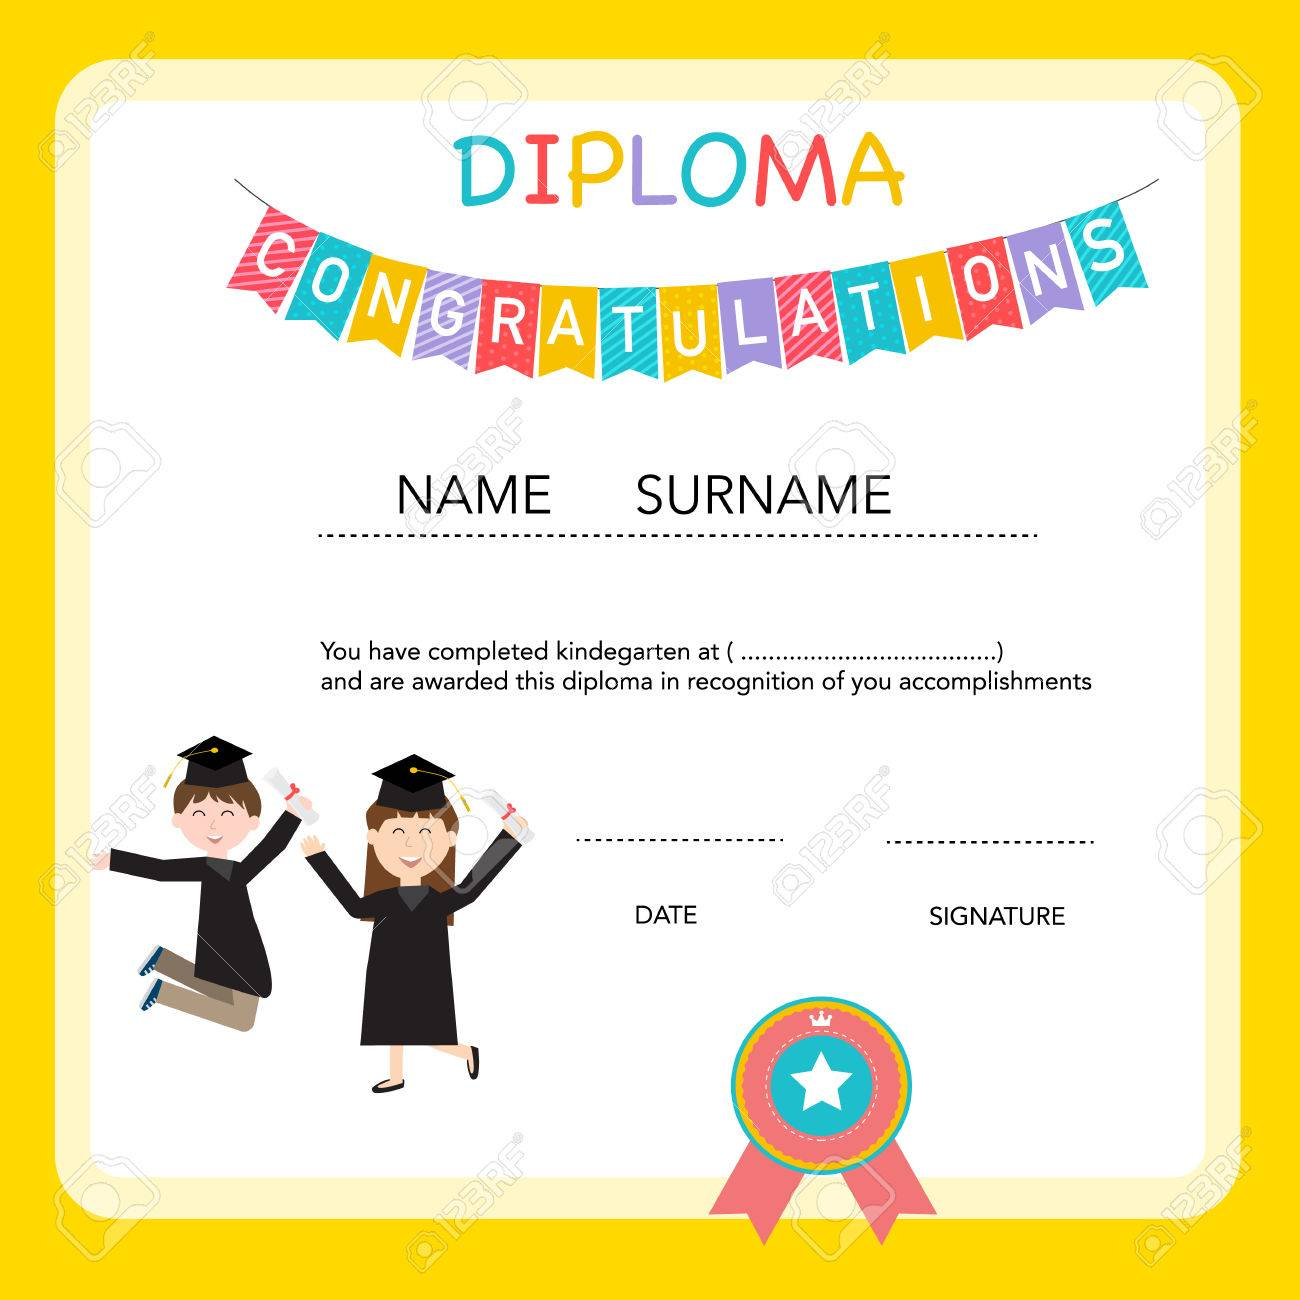 Summer camp certificate template image collections templates certificate template with kids in automotive electrical circuits kids diploma certificate template in petty cash voucher xflitez Images